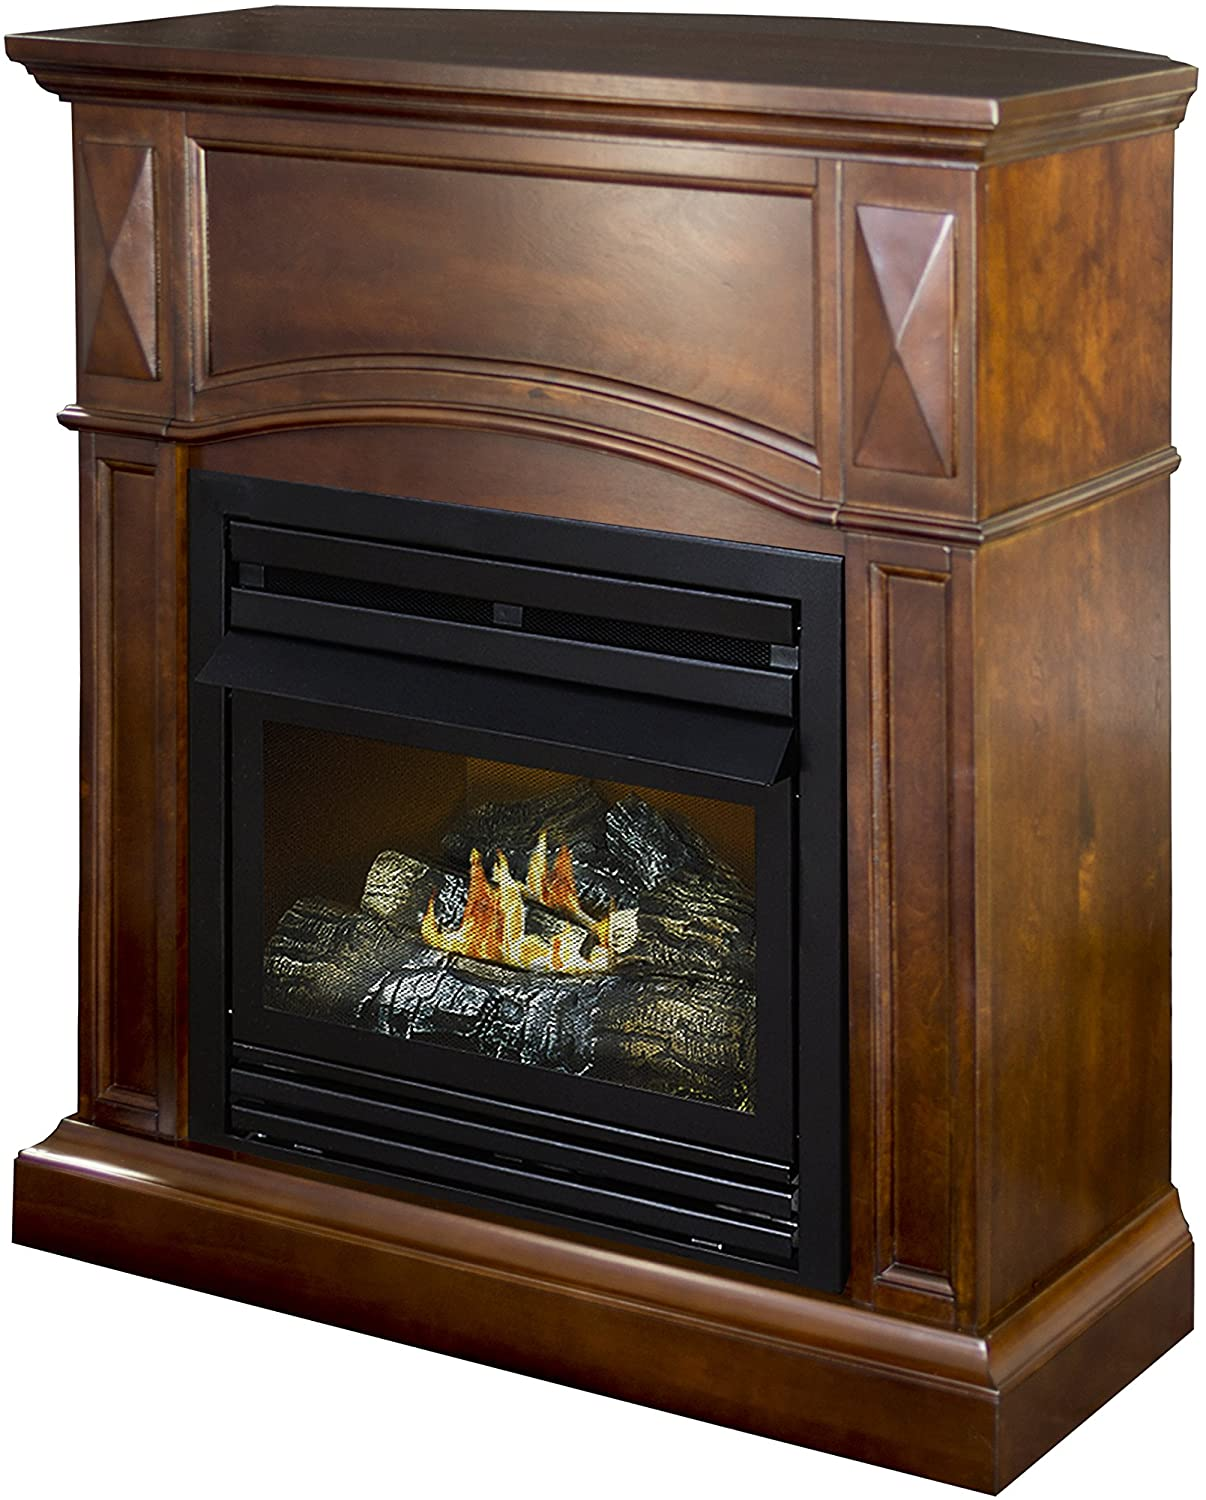 Dual Fuel Fireplace Luxury Amazon Pleasant Hearth Convertible Vent Free Dual Fuel